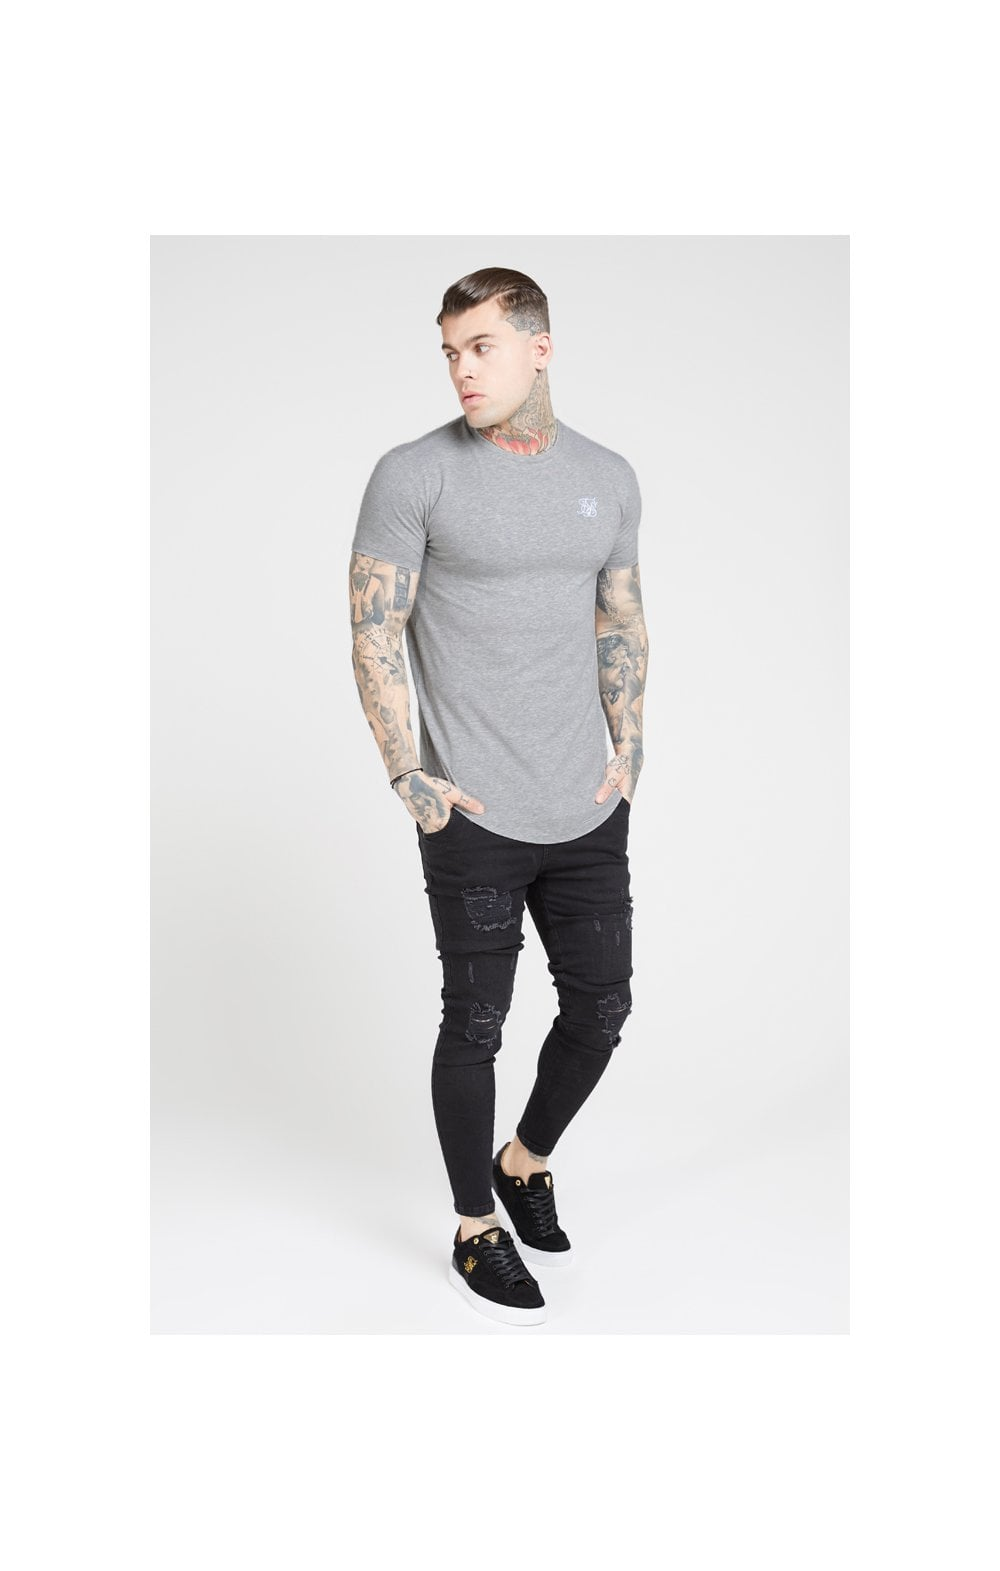 SikSilk S/S Core Gym Tee – Grey Marl (3)